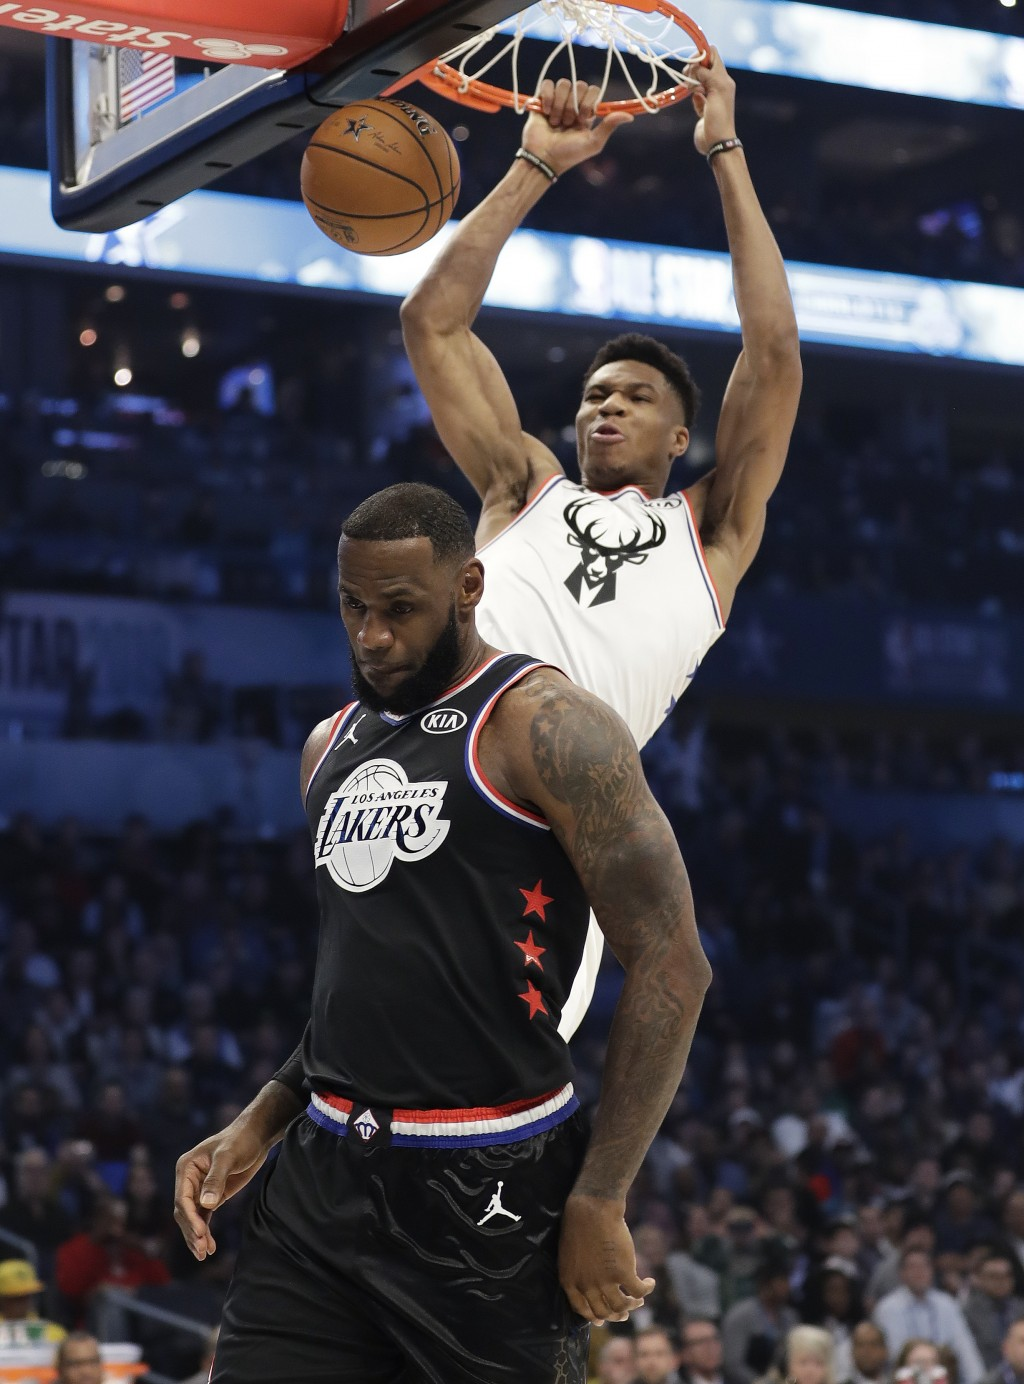 CORRECTS TO THE LAKERS, NOT THE CAVALIERS - Team Giannis' Giannis Antetokounmpo, of the Milwaukee Bucks, dunks the ball against Team LeBron's LeBron J